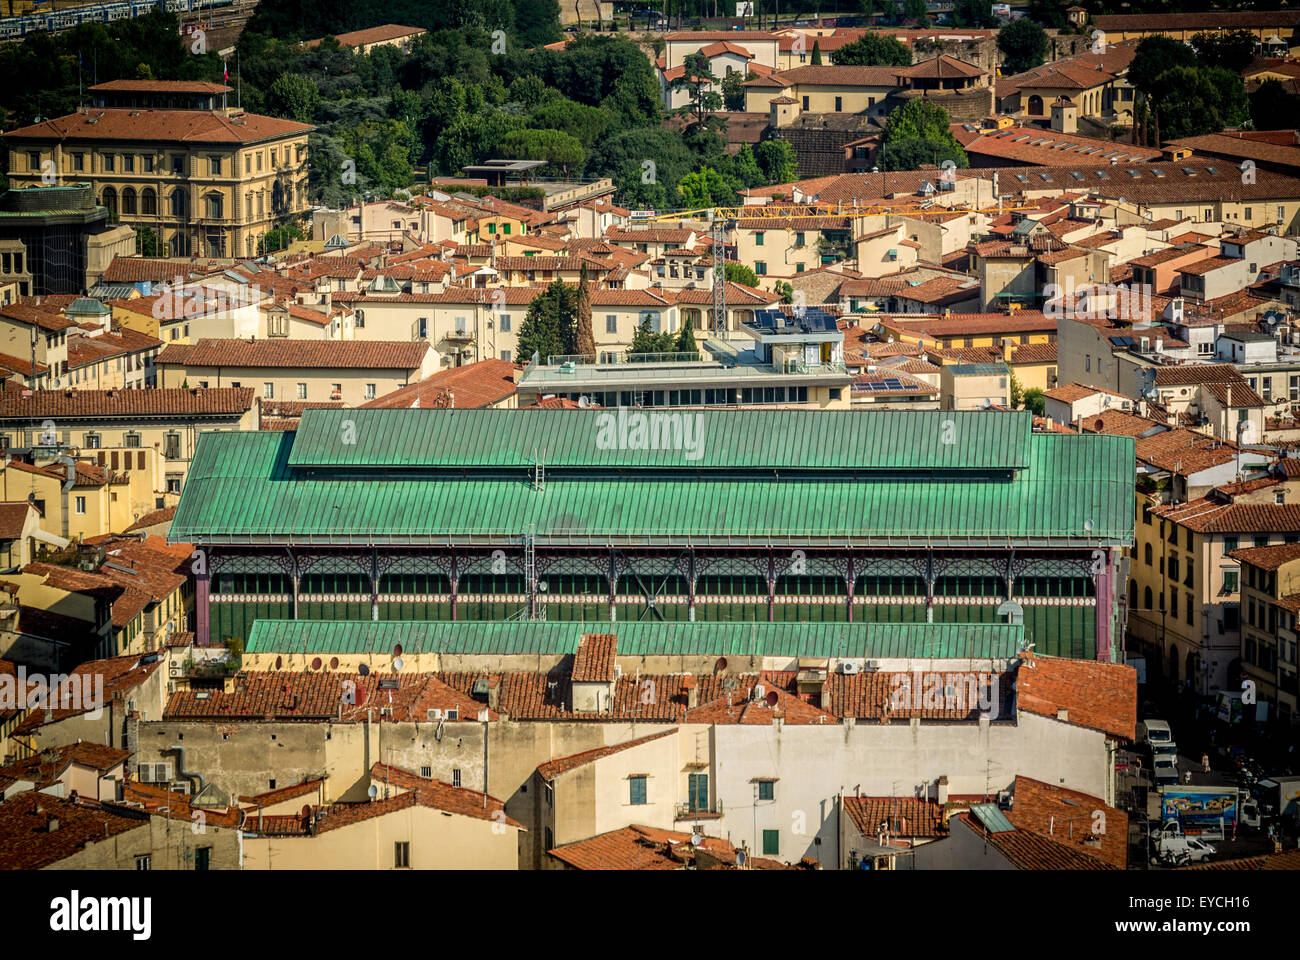 Exterior of Mercato Centrale indoor market. Florence, Italy. - Stock Image